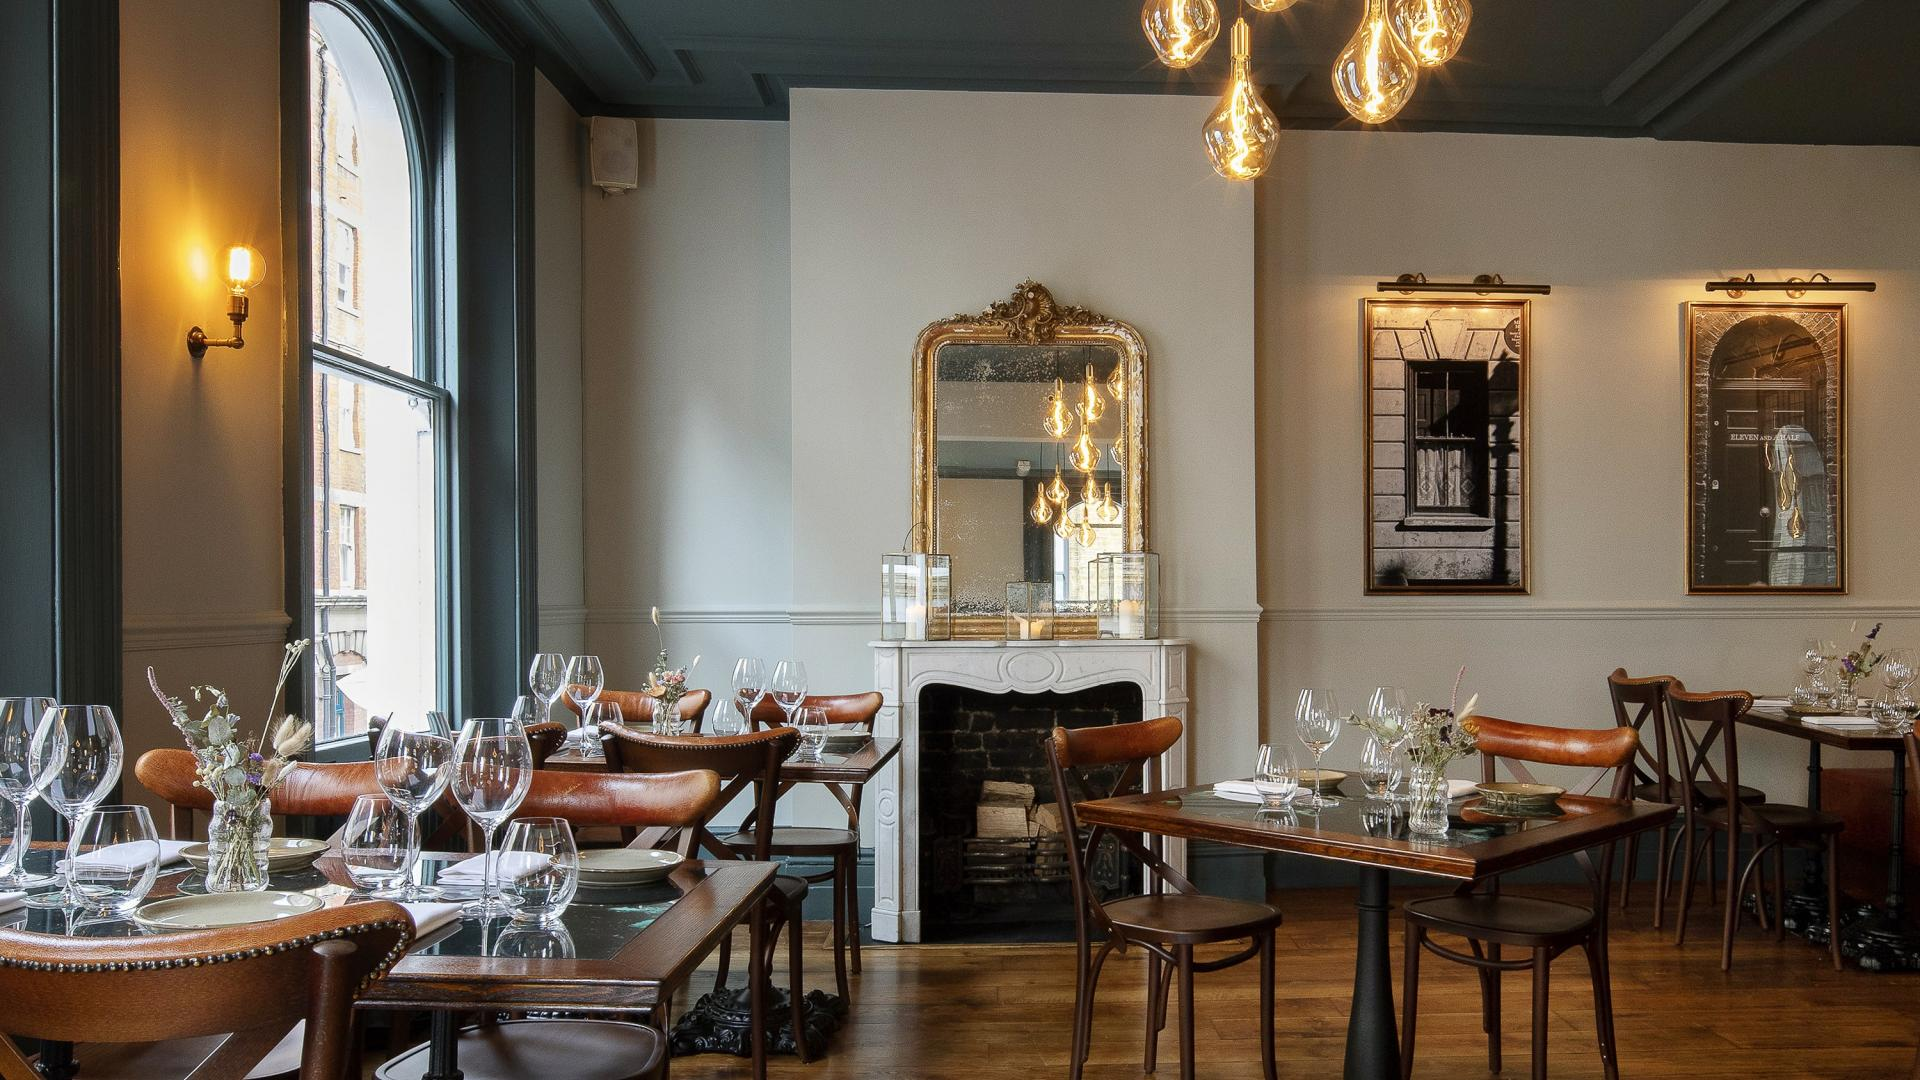 This is an image of the interior upstairs at The Princess of Shoreditch